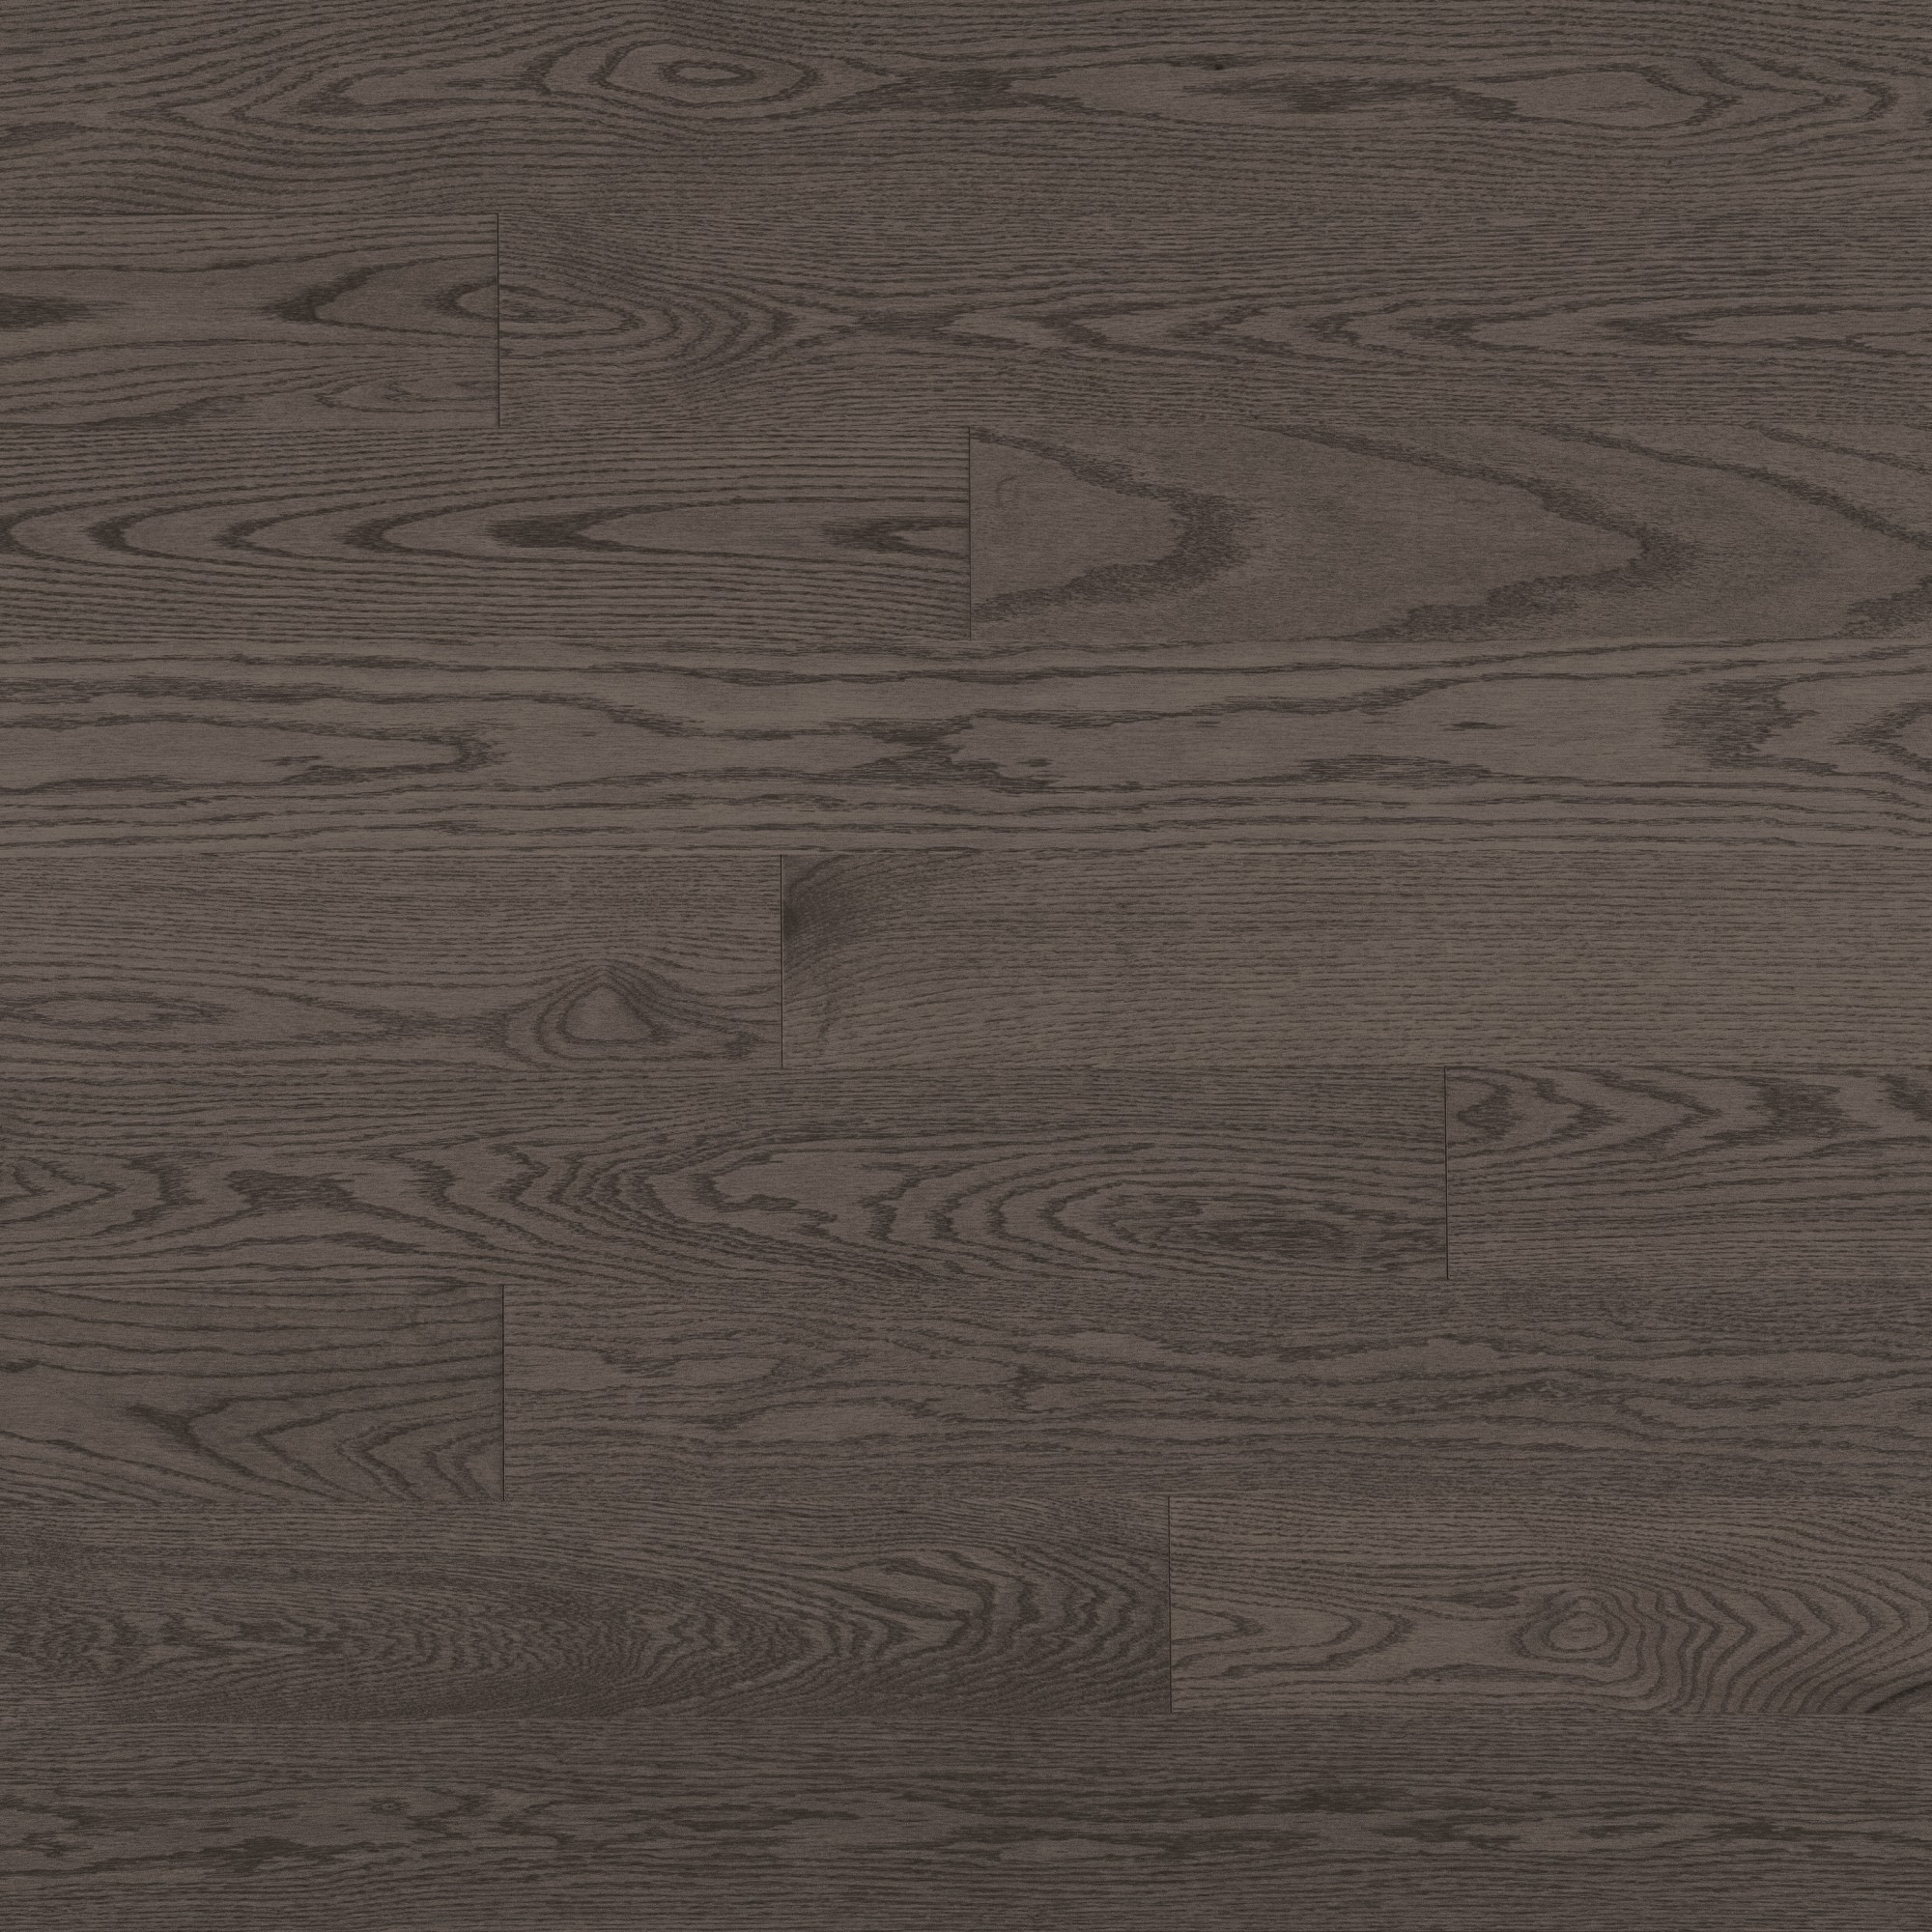 Red oak charcoal mirage hardwood floors call for special for Red oak hardwood flooring